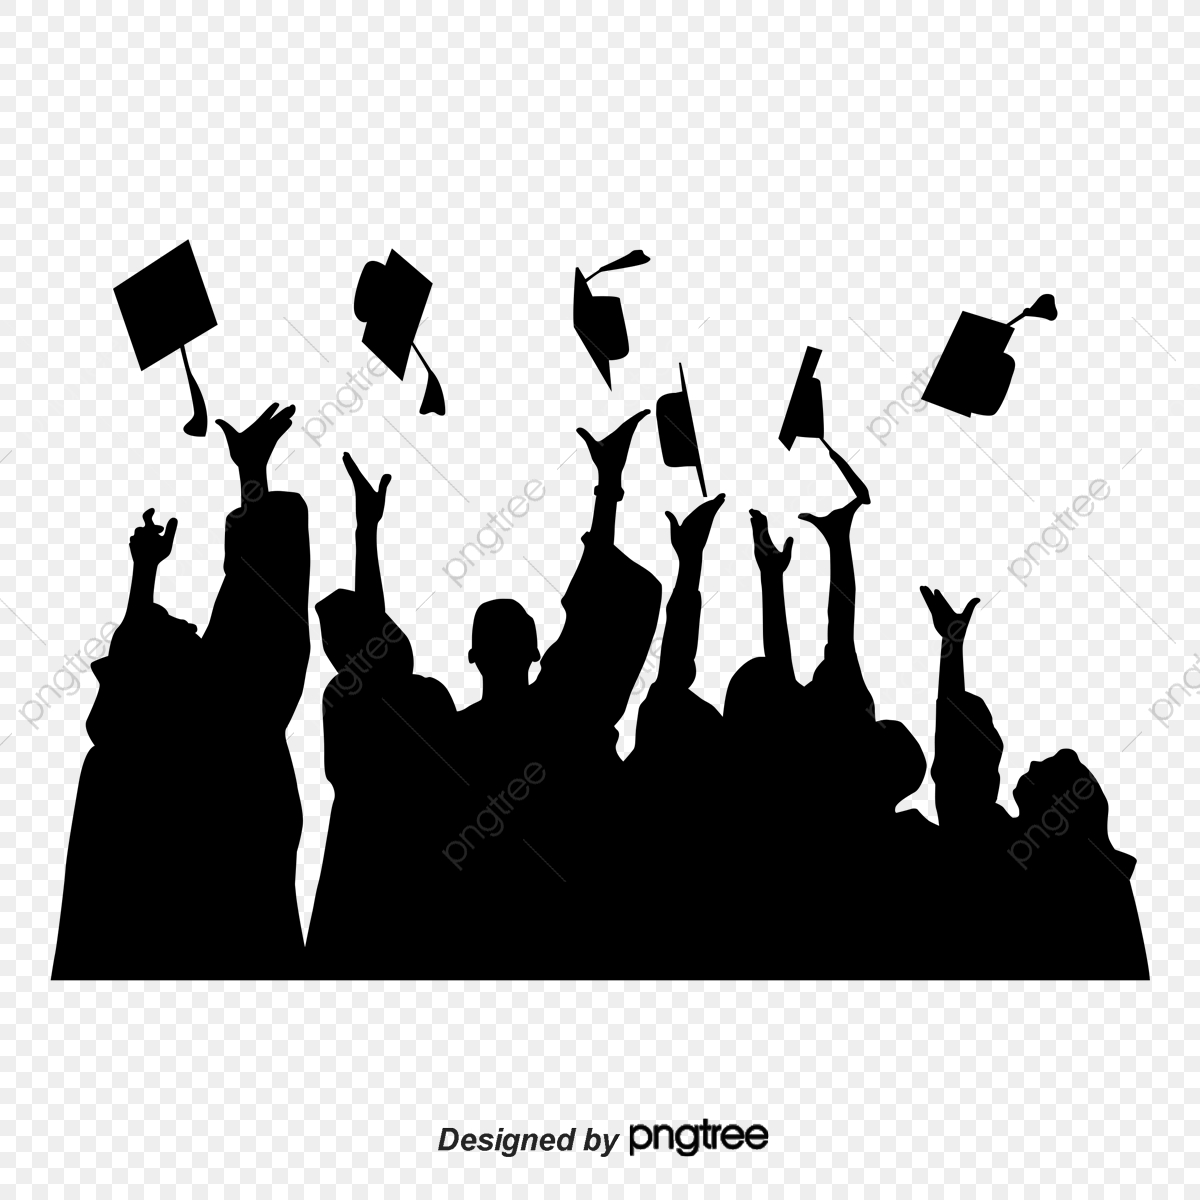 Black Graduation Silhouette, Character, Silhouette, Student